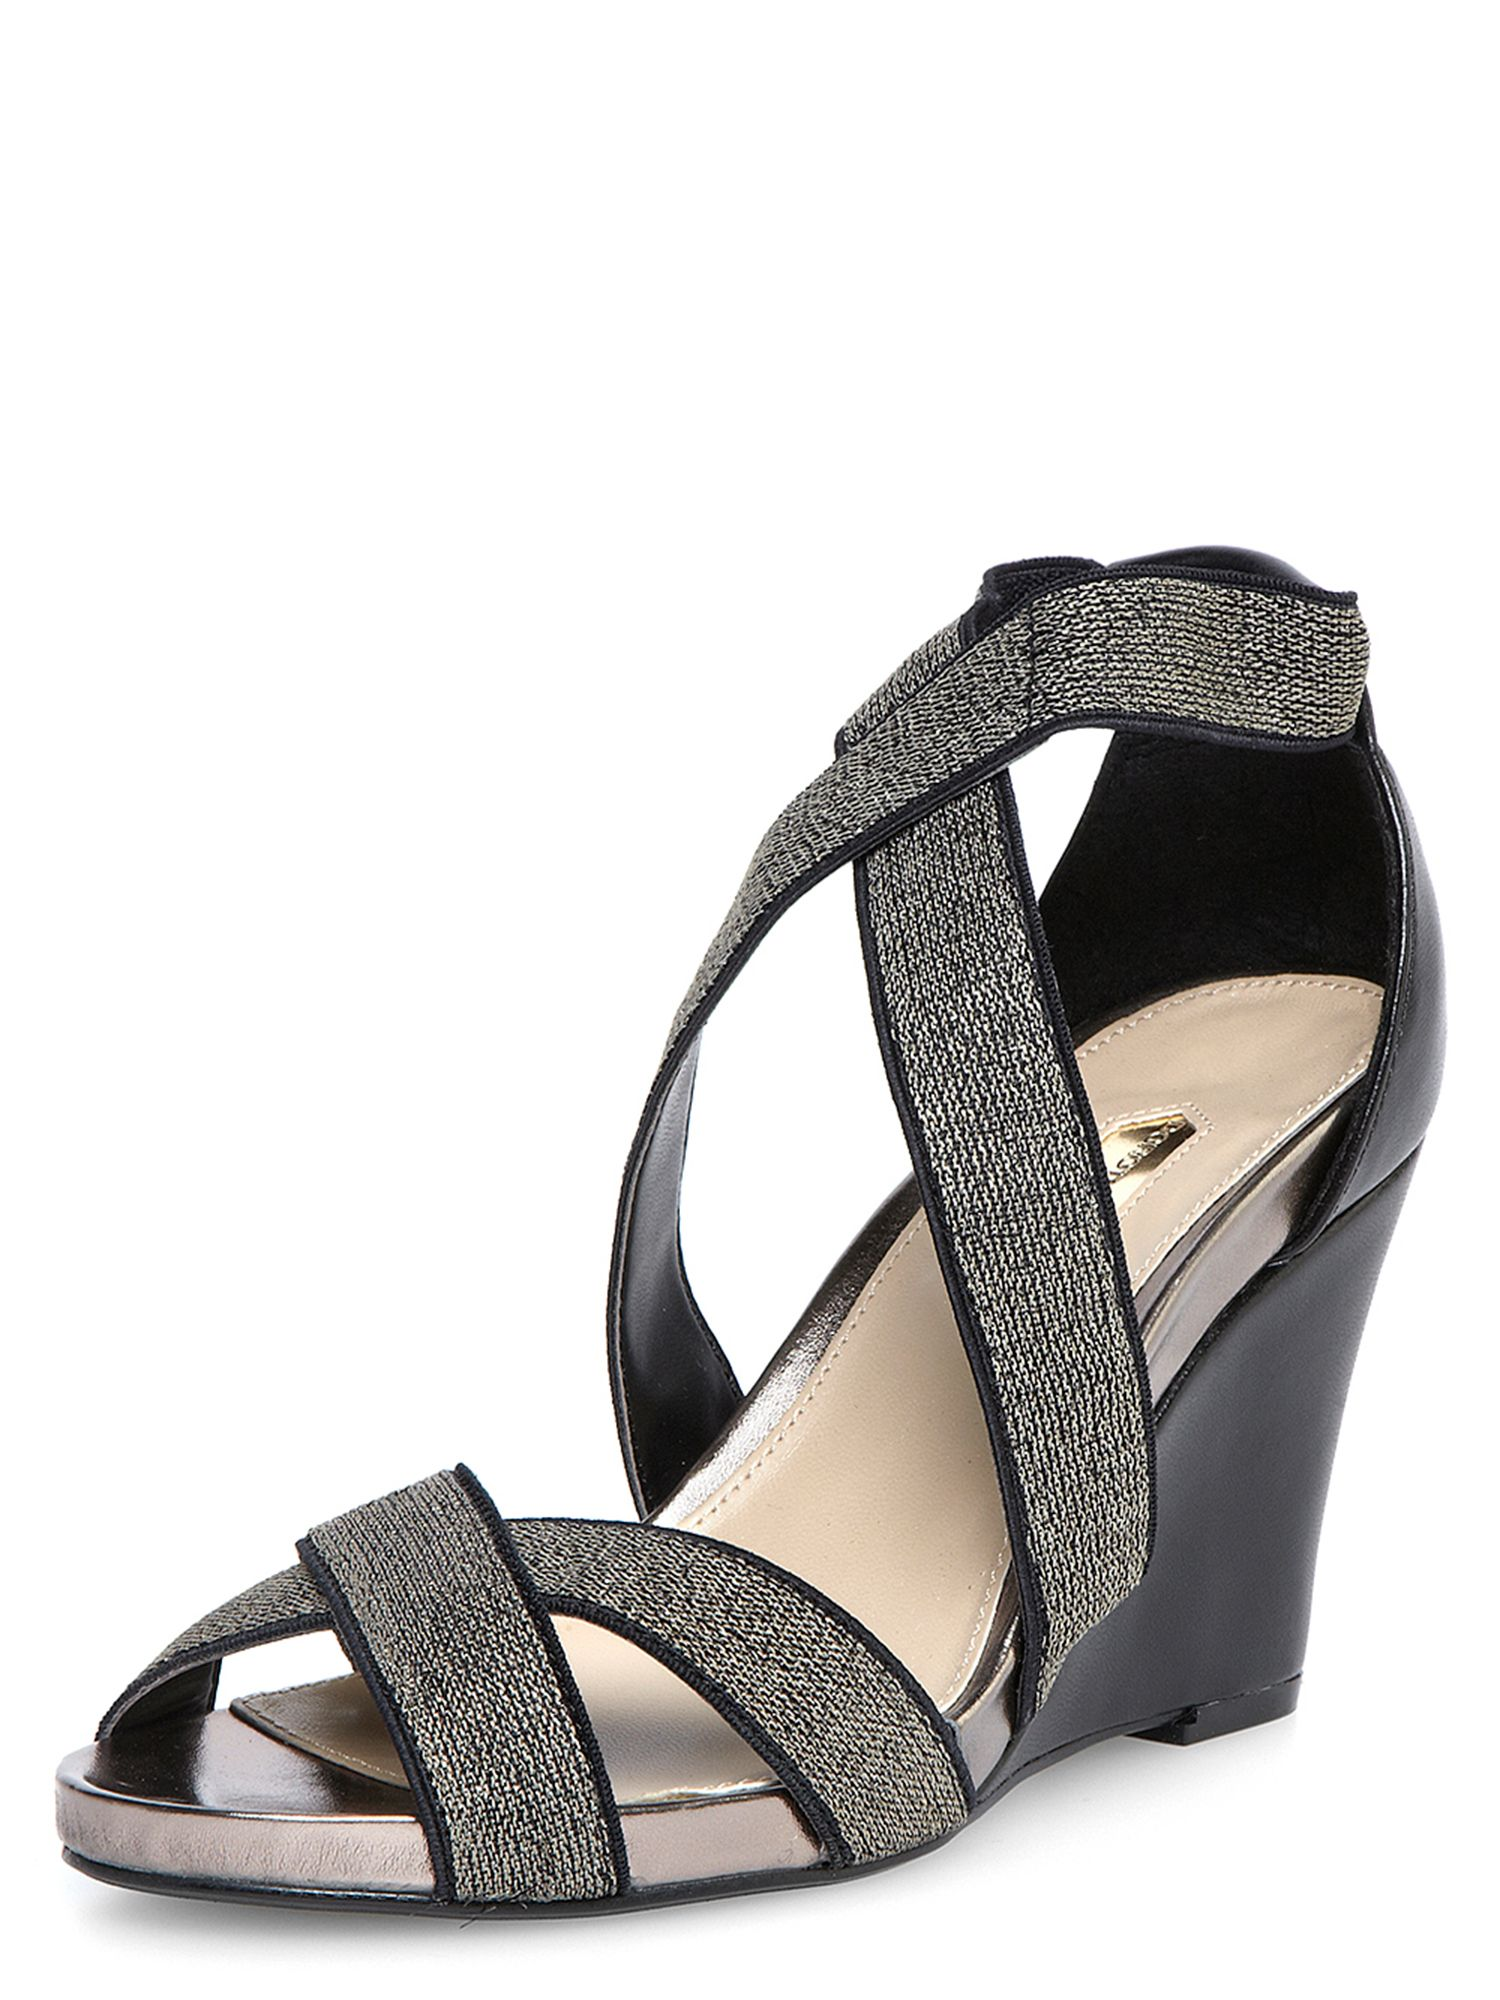 Elastic mid wedge shoe